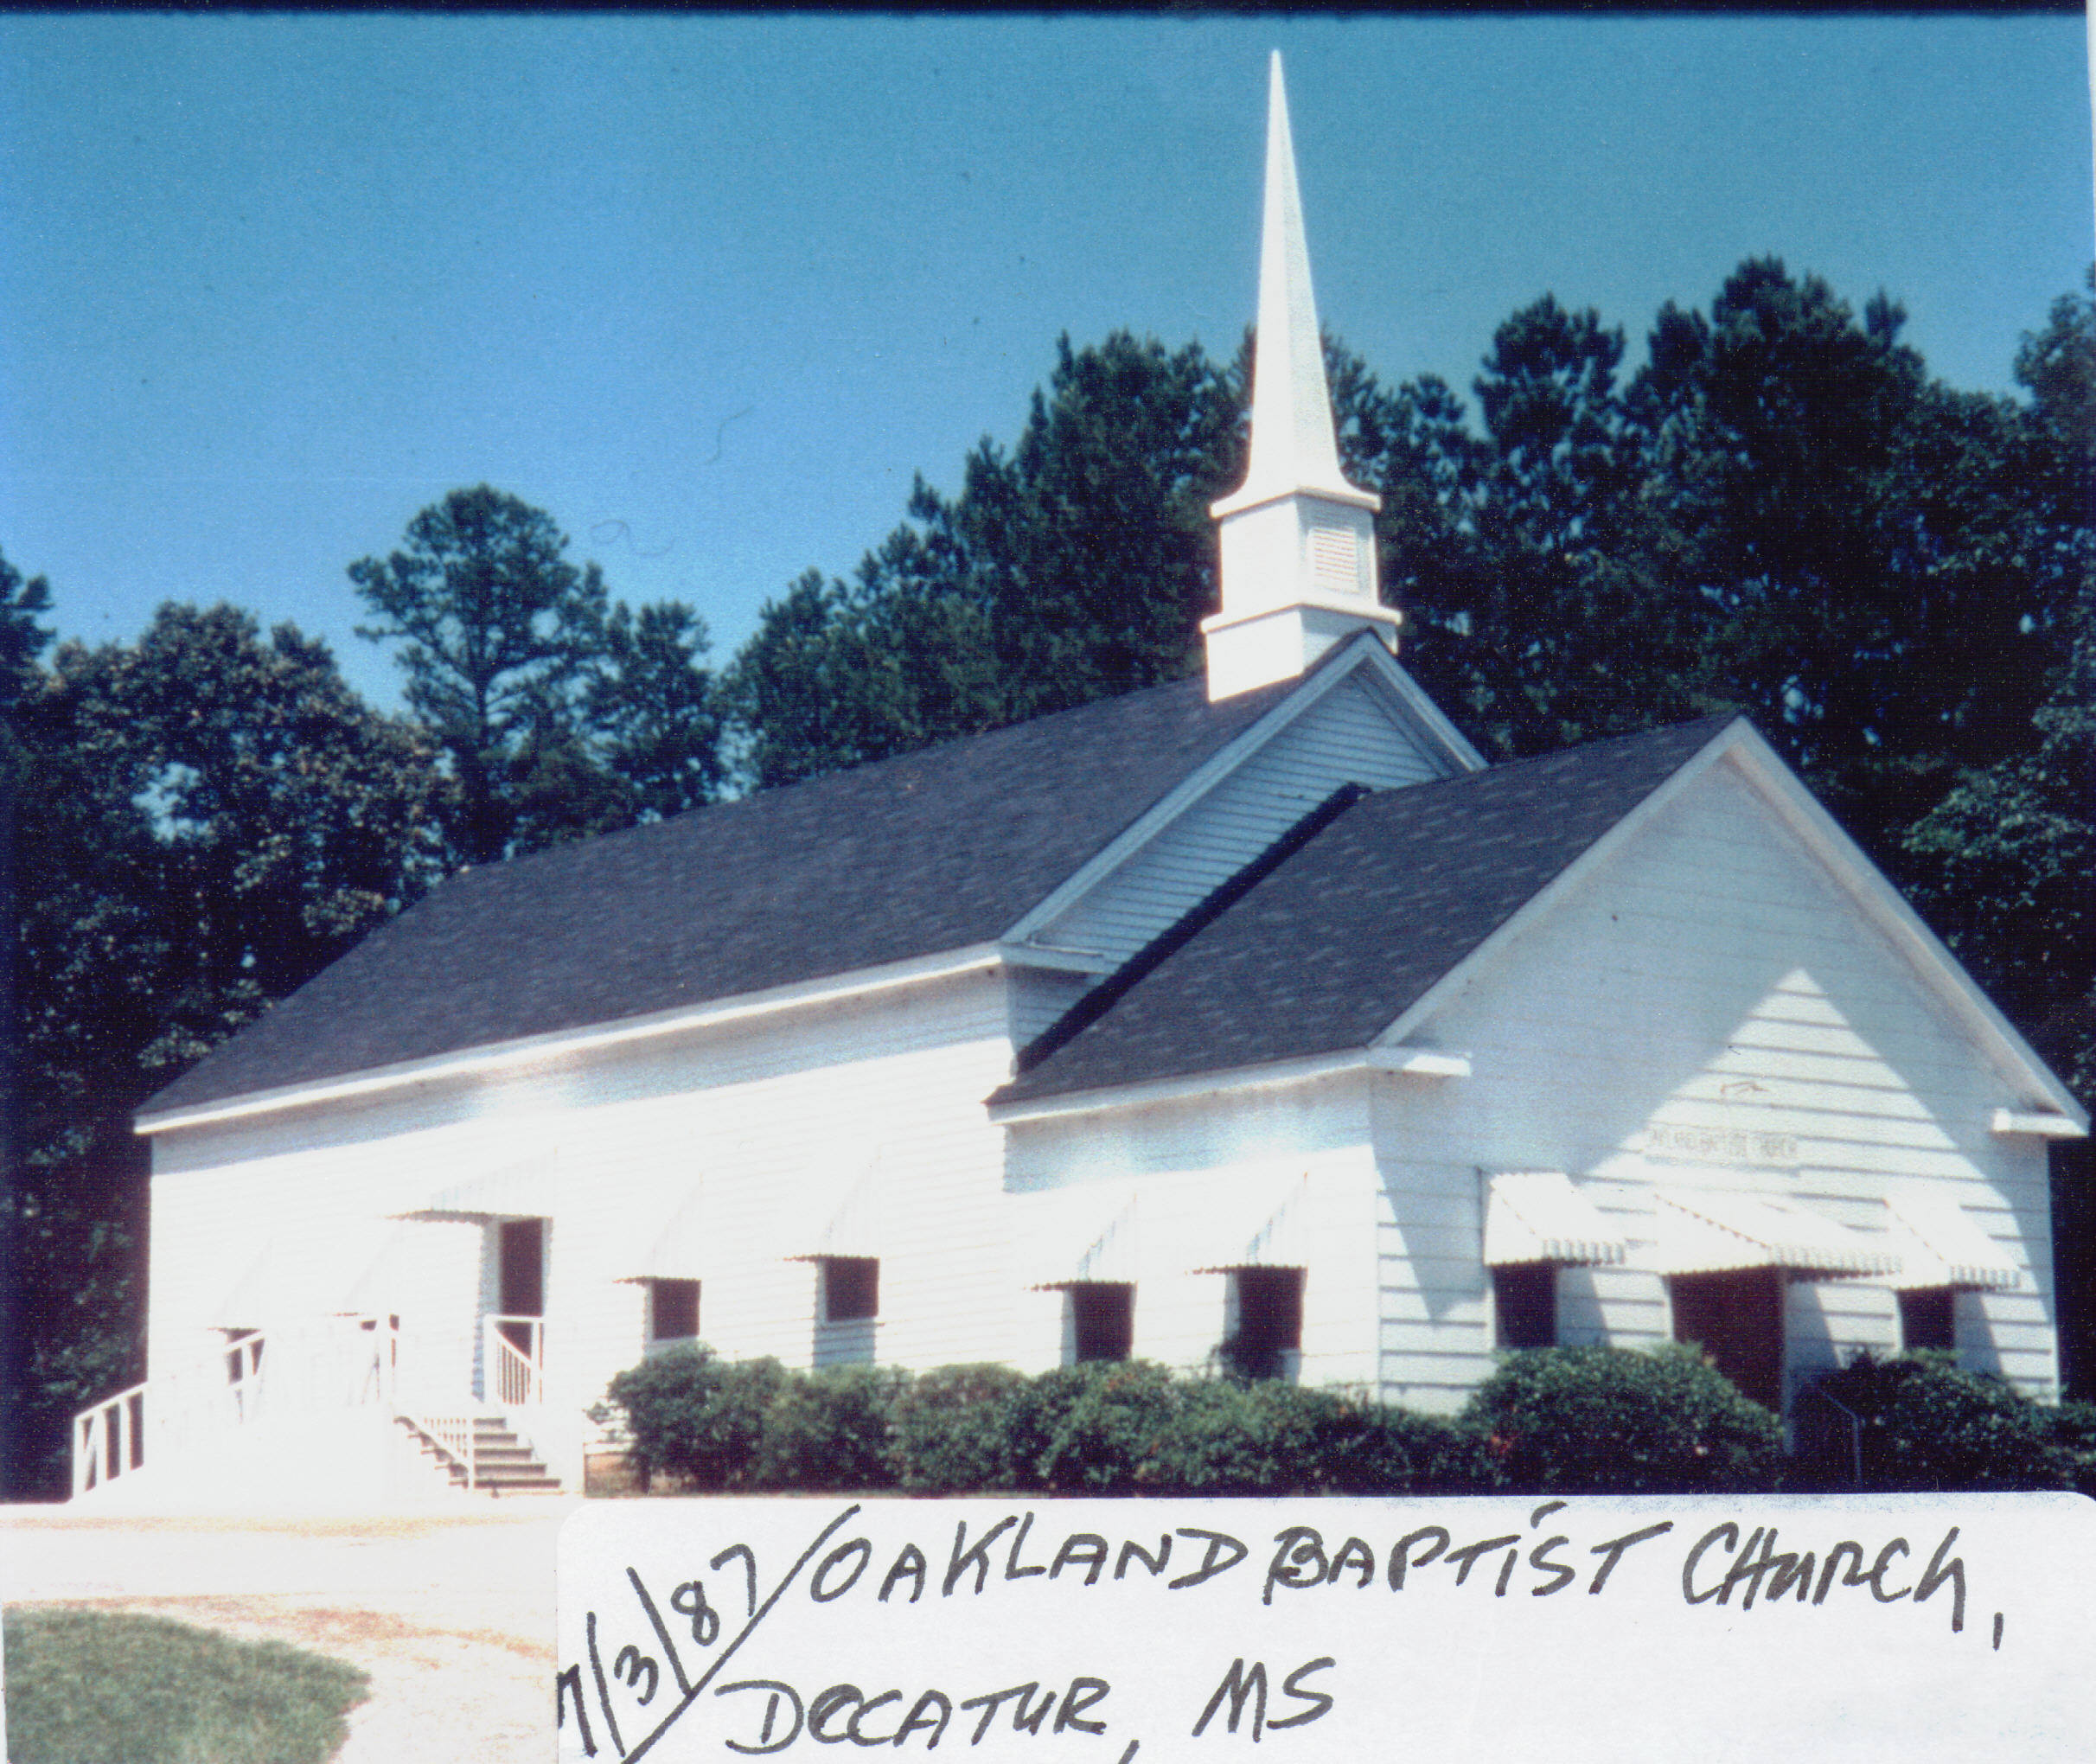 Mississippi newton county decatur - Oakland Baptist Church Decatur Ms 7 3 1987 Thumbnail